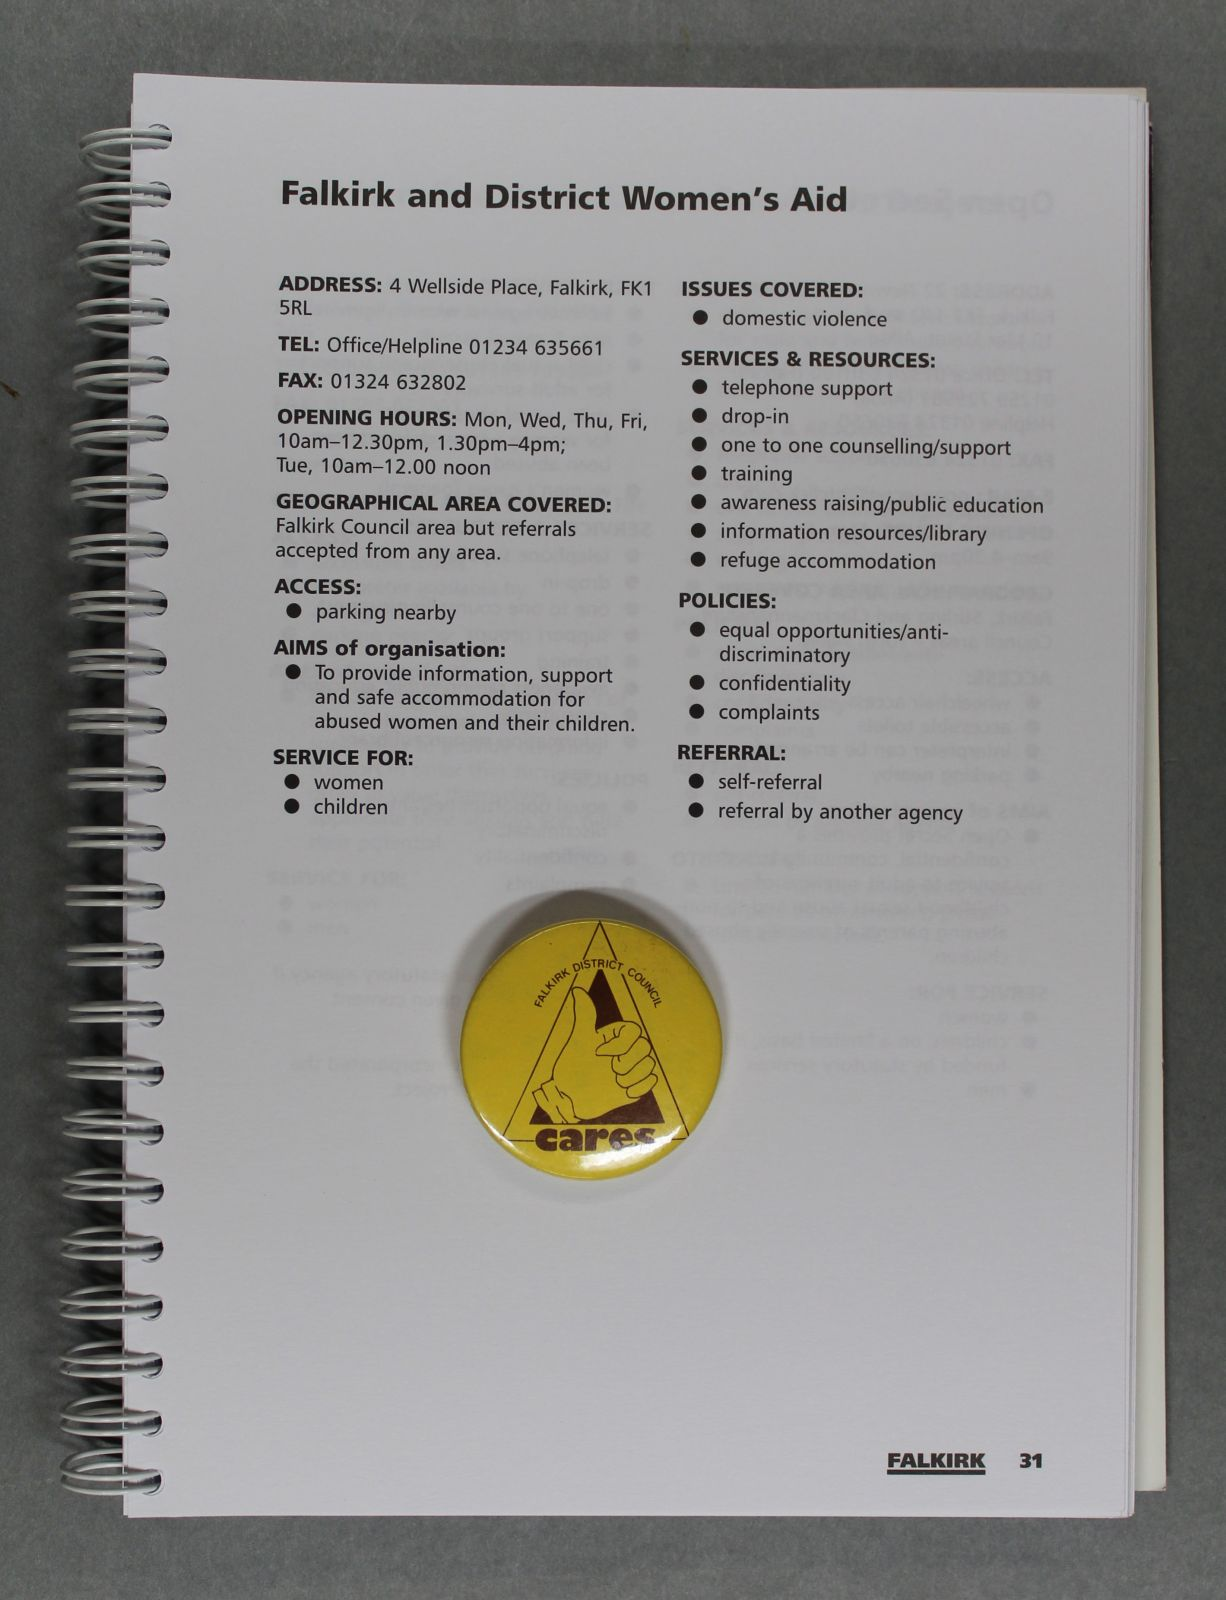 A yellow 'Falkirk District Council Cares' badge on top of an entry from a book that gives information on Falkirk and District Women's Aid